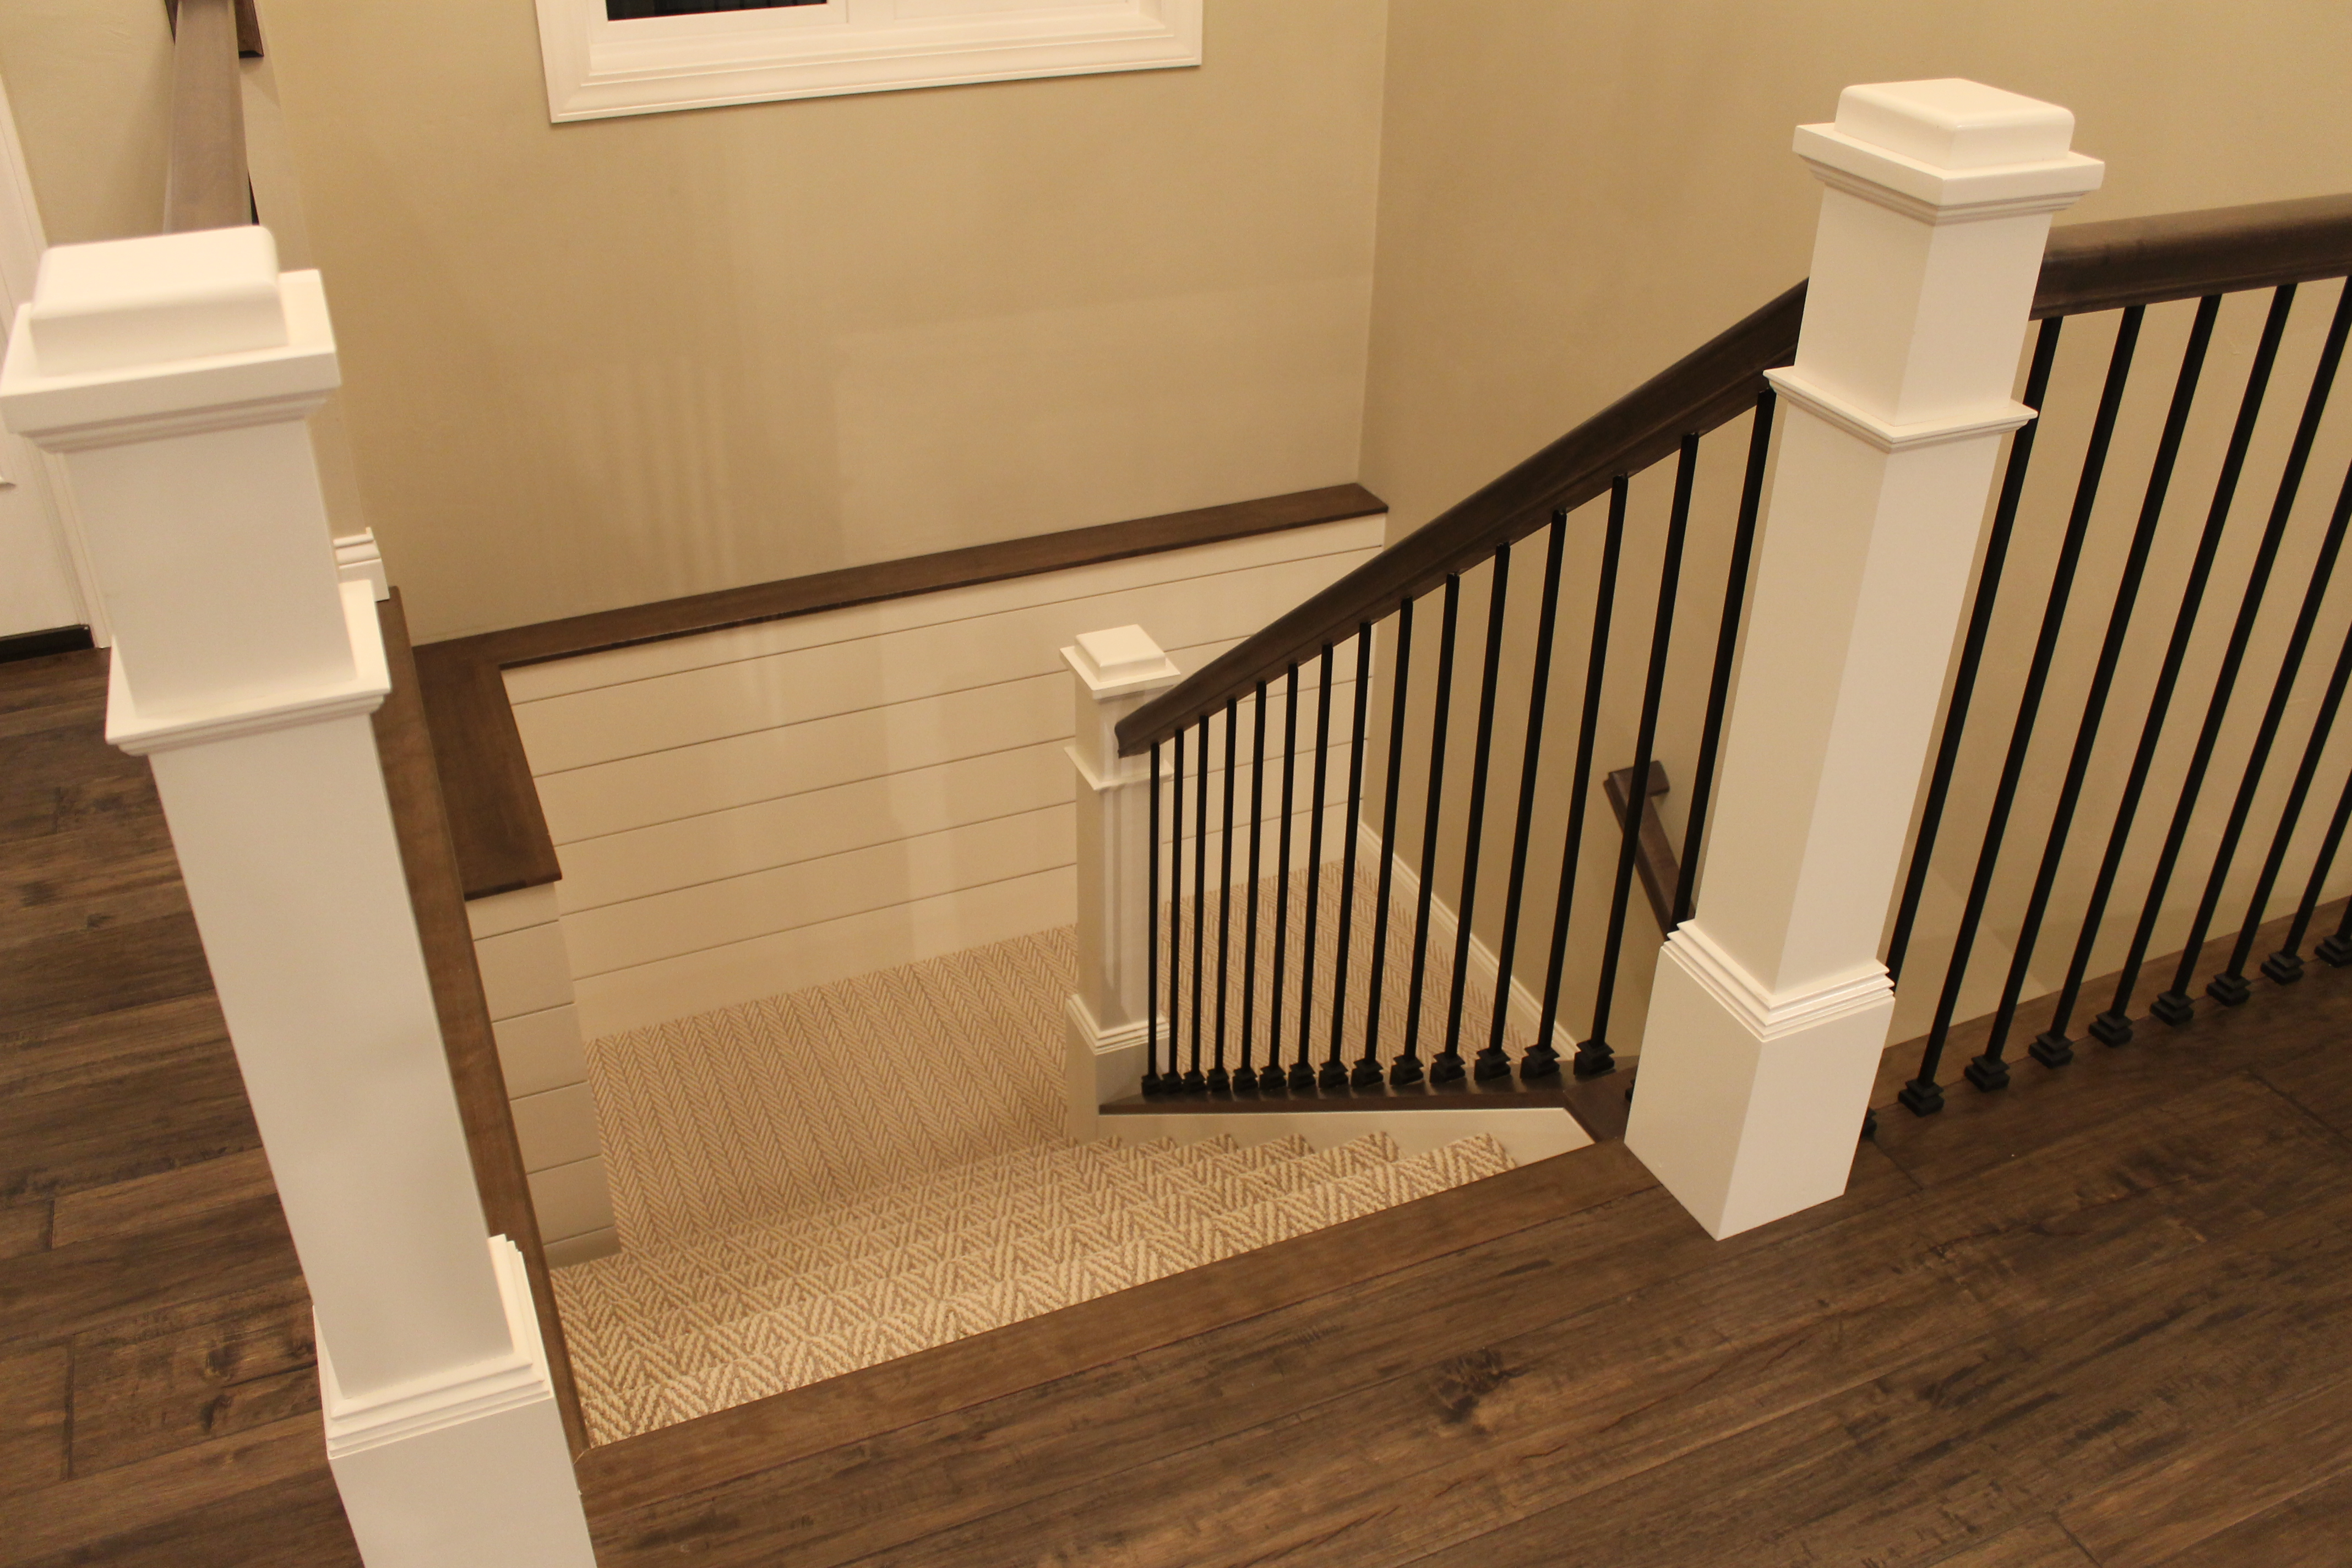 Newest trends for today s farmhouse look katie jane for Farmhouse stairs